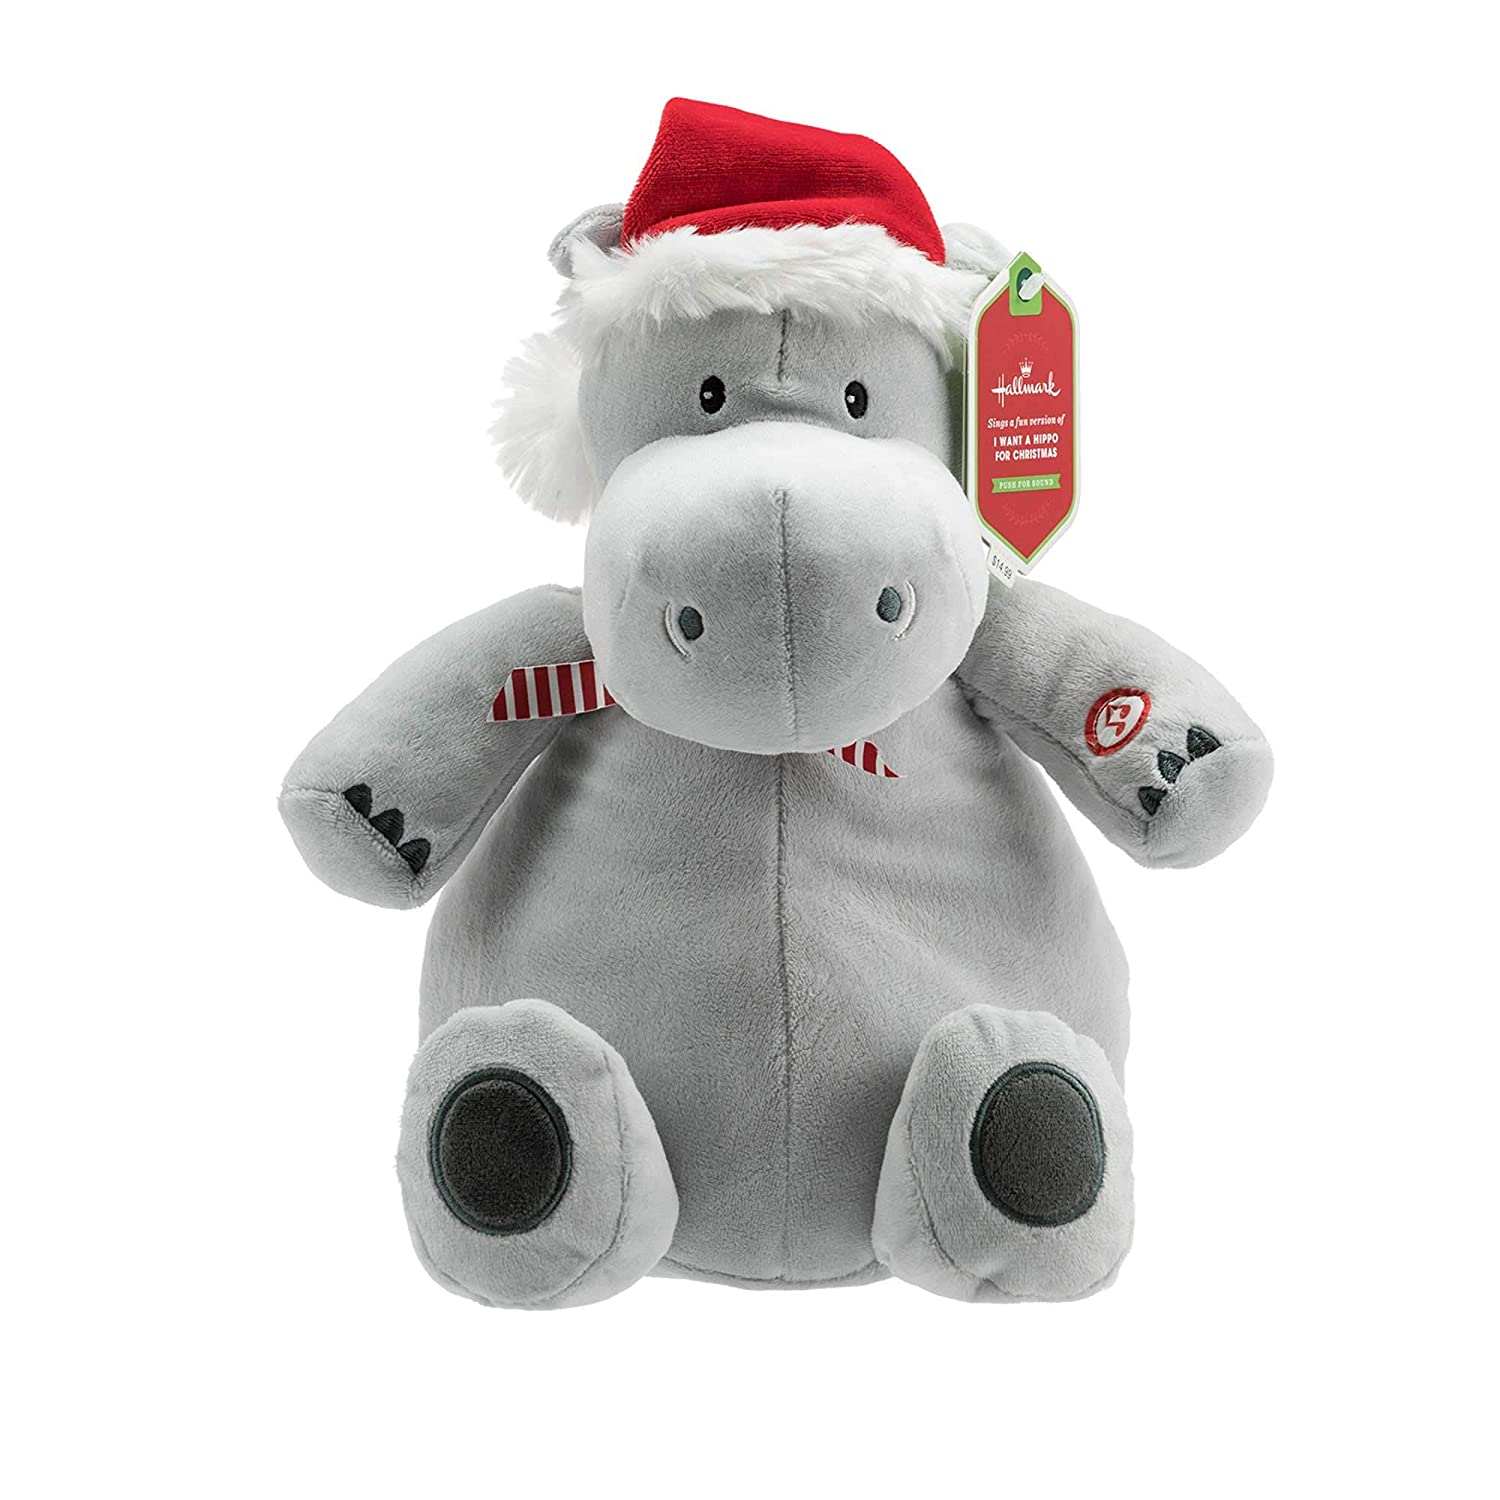 Amazon.com: Hallmark Plush Stuffed Hippopotamus Sound, Christmas ...